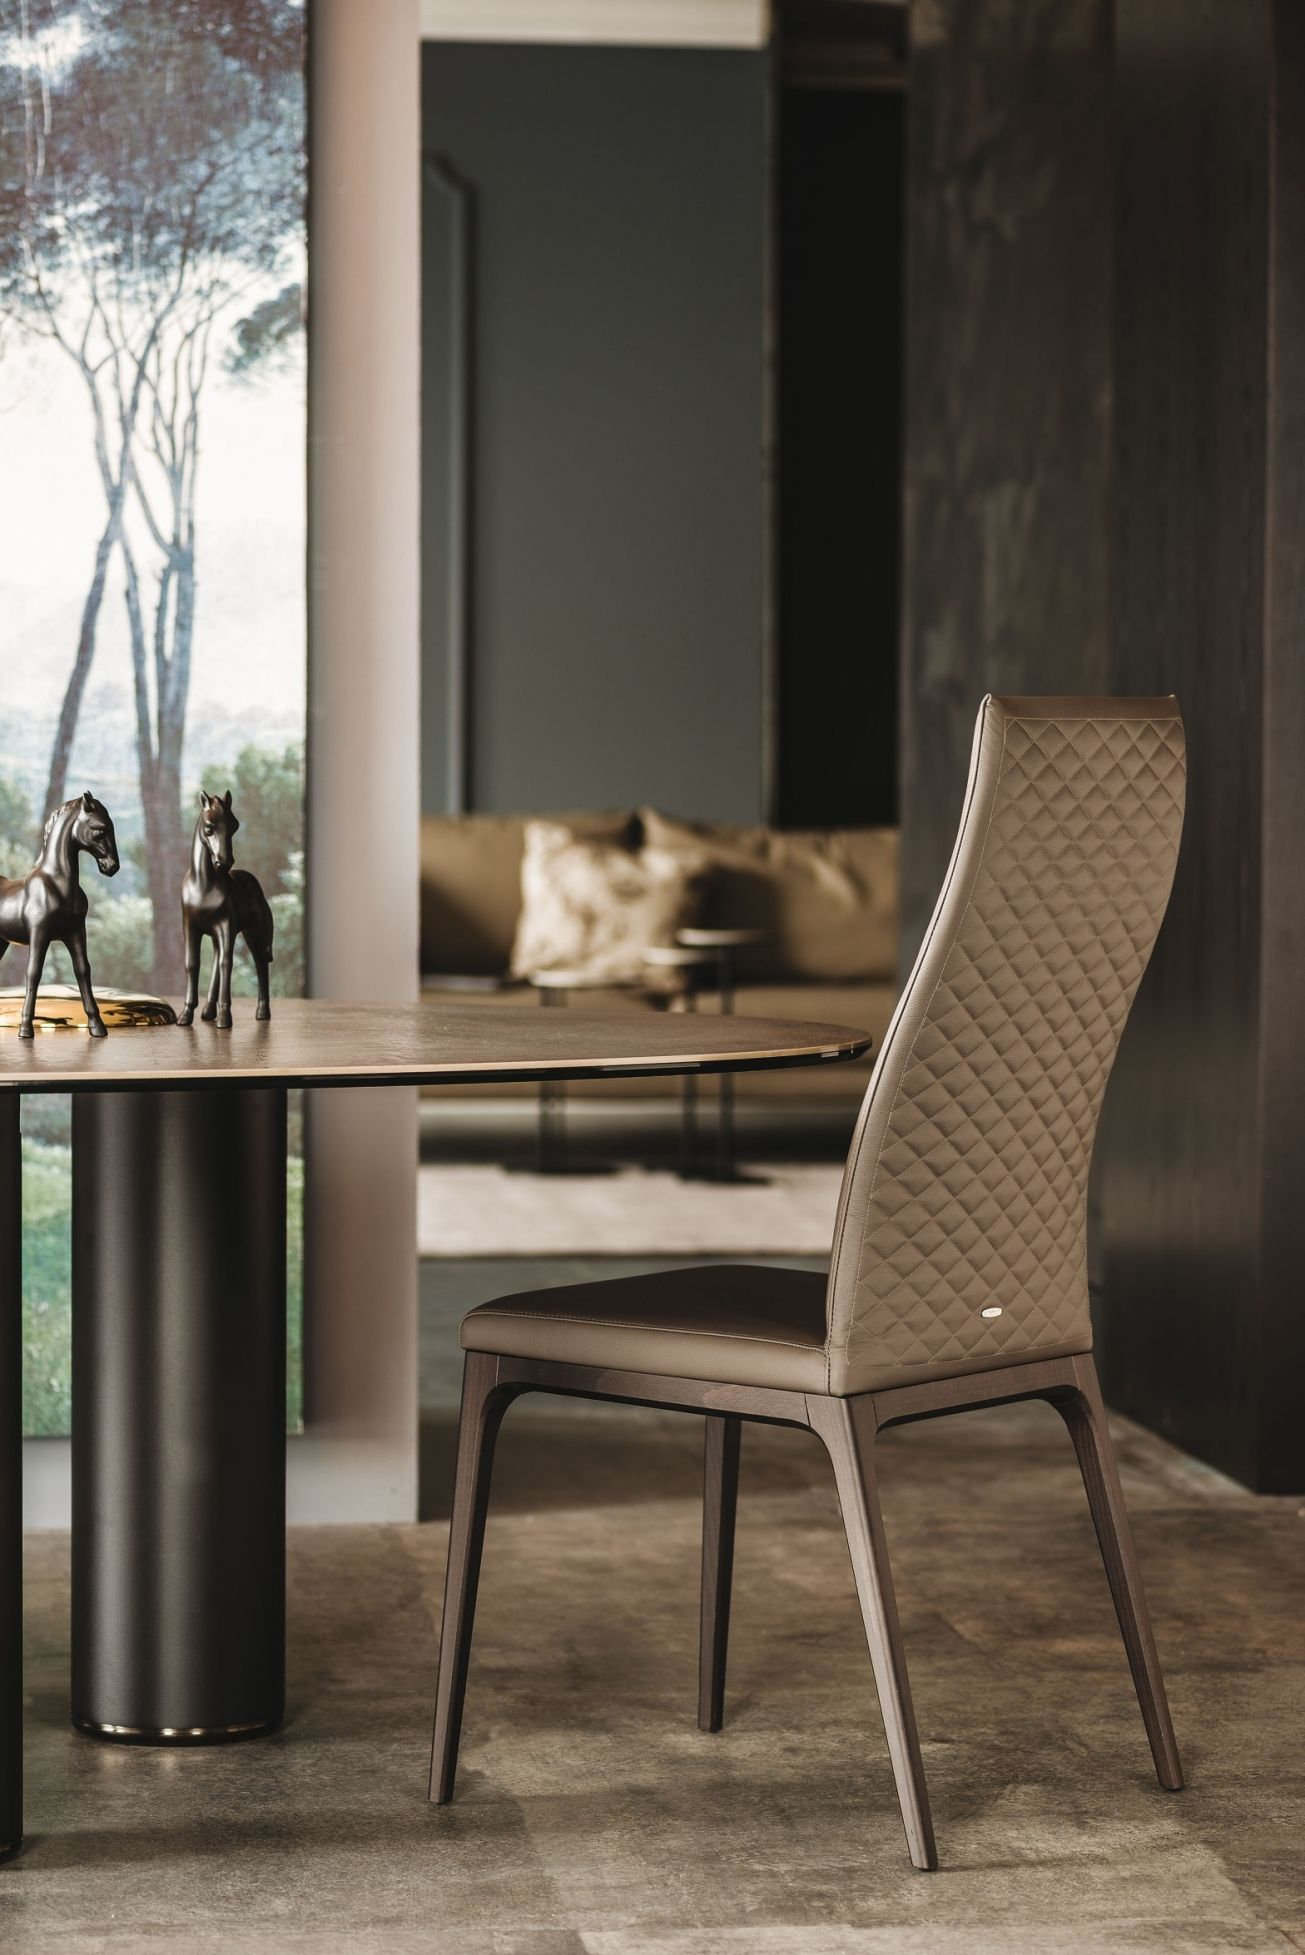 A Dining Chair Can Provide The Essential That Your Division